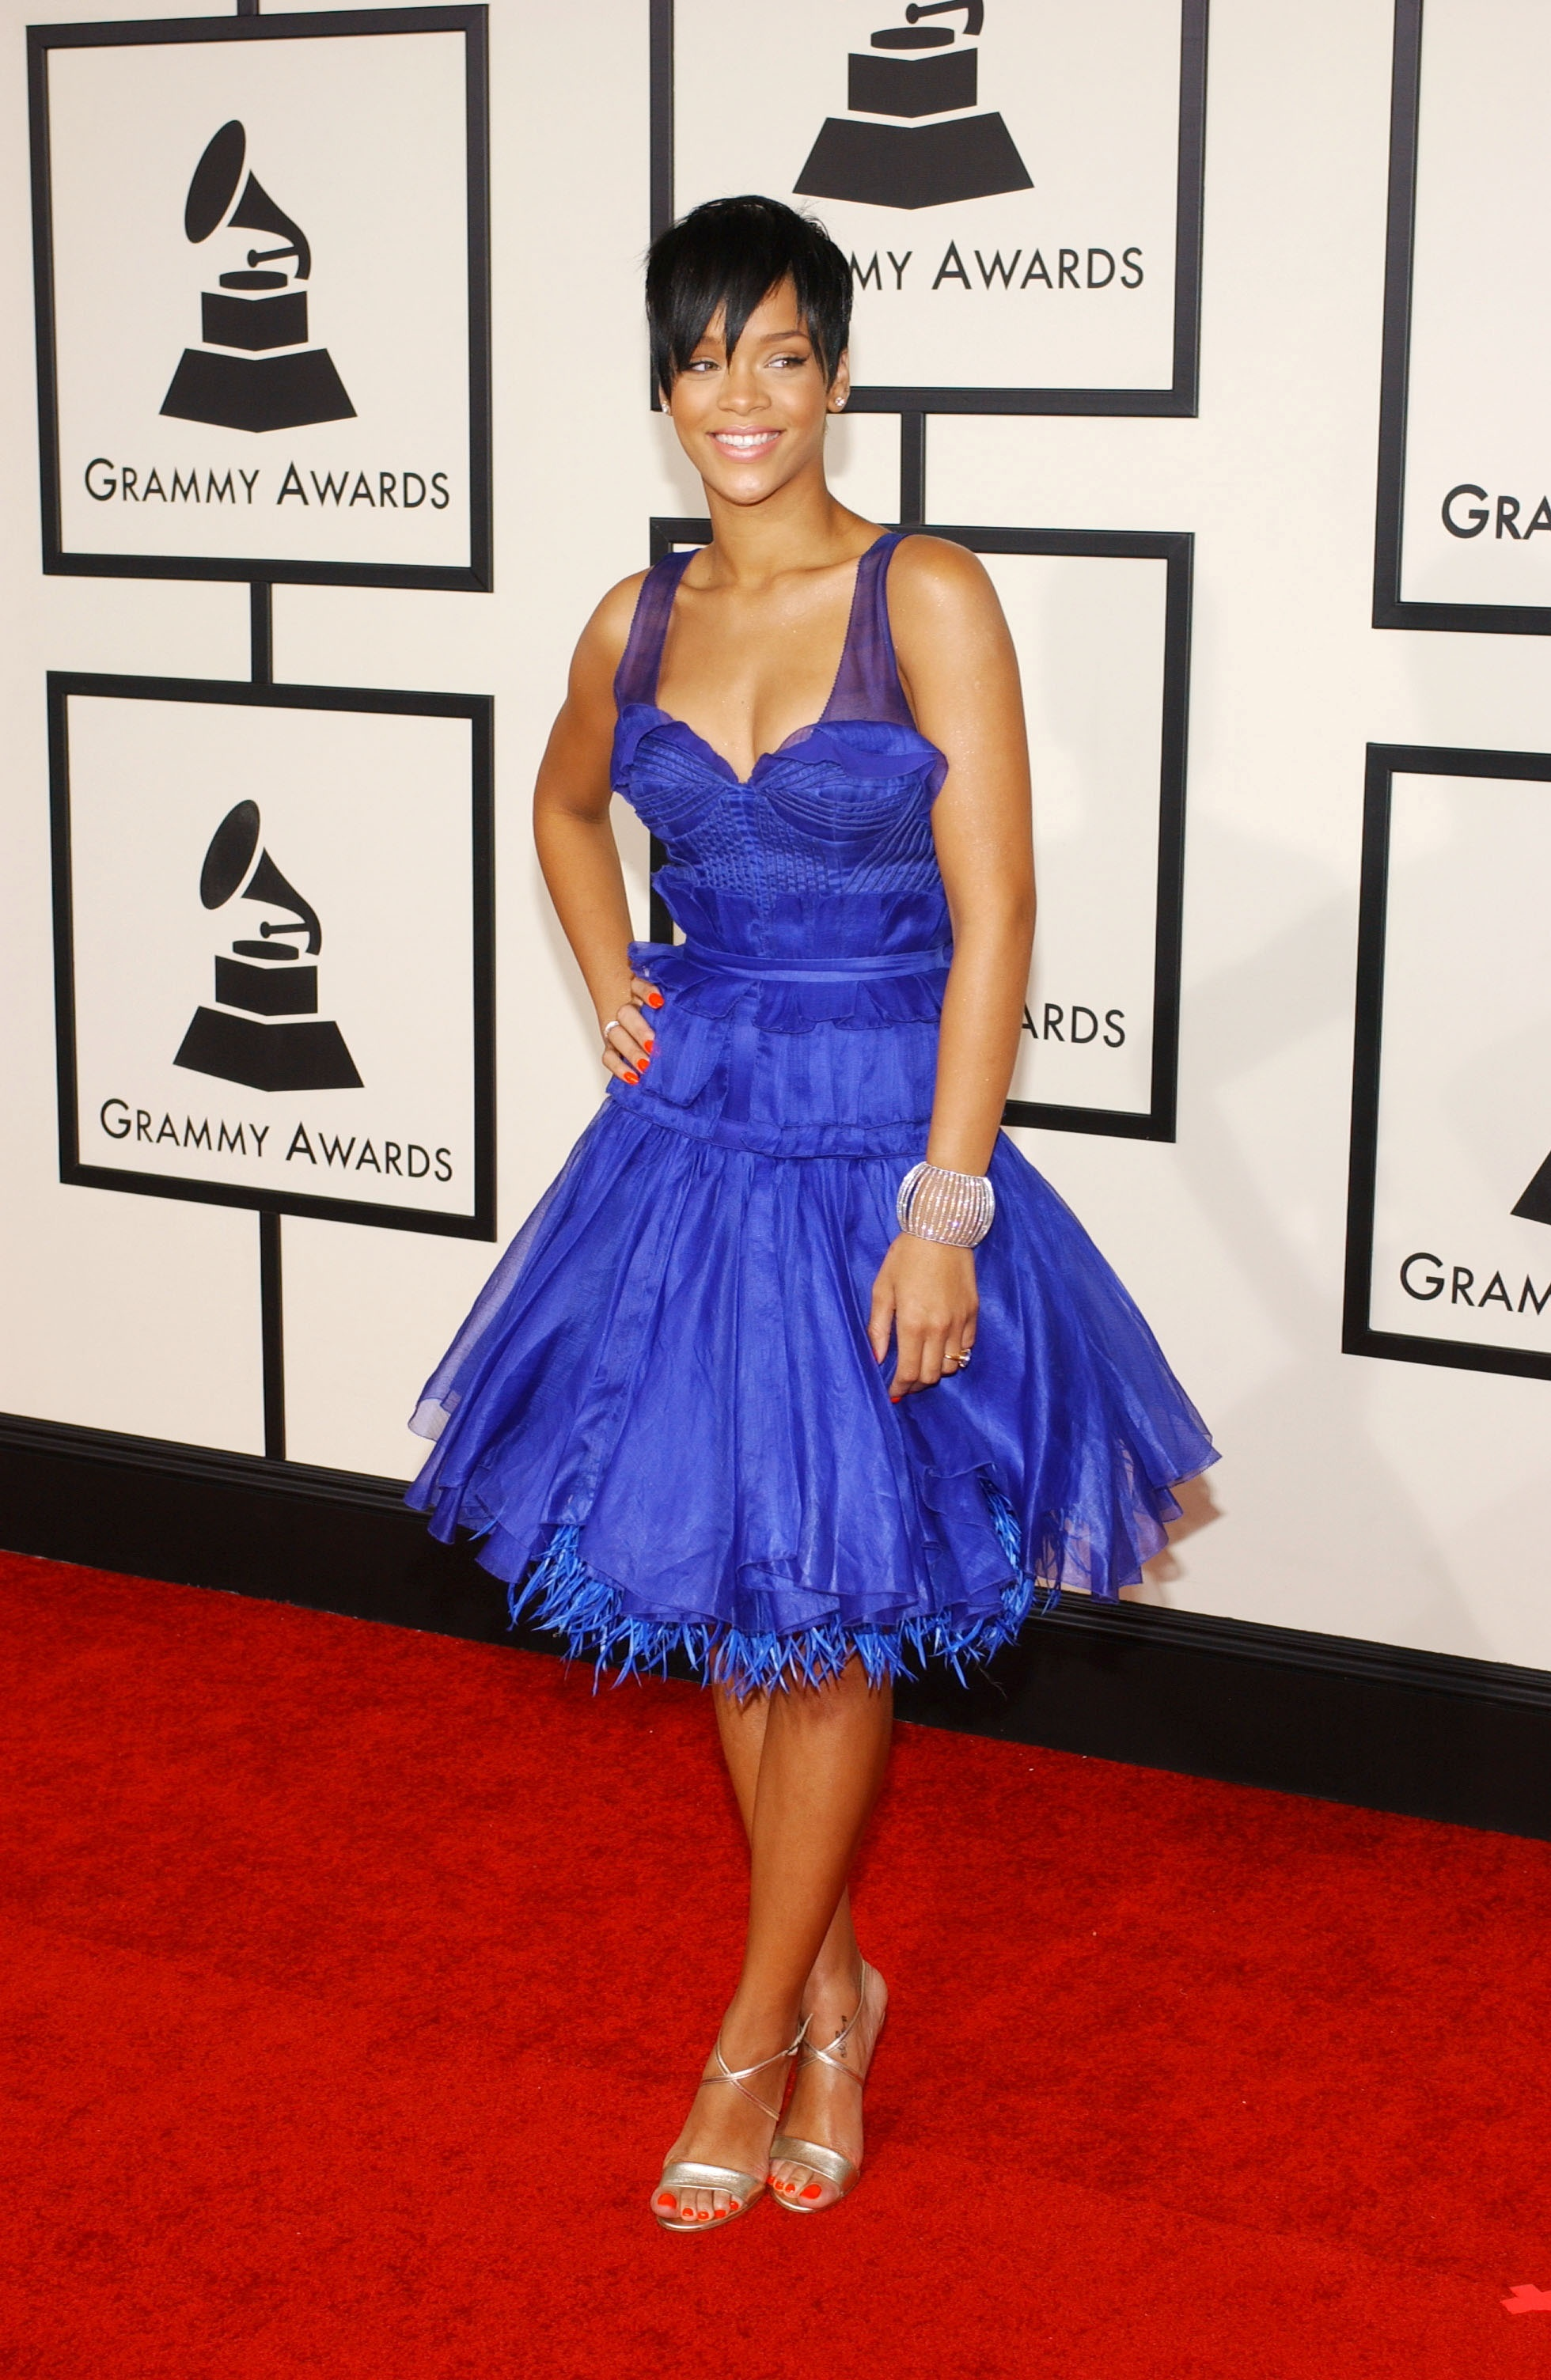 Rihanna attends the 50th Annual Grammy Awards at Staples Center in Los Angeles on Feb. 10, 2008.